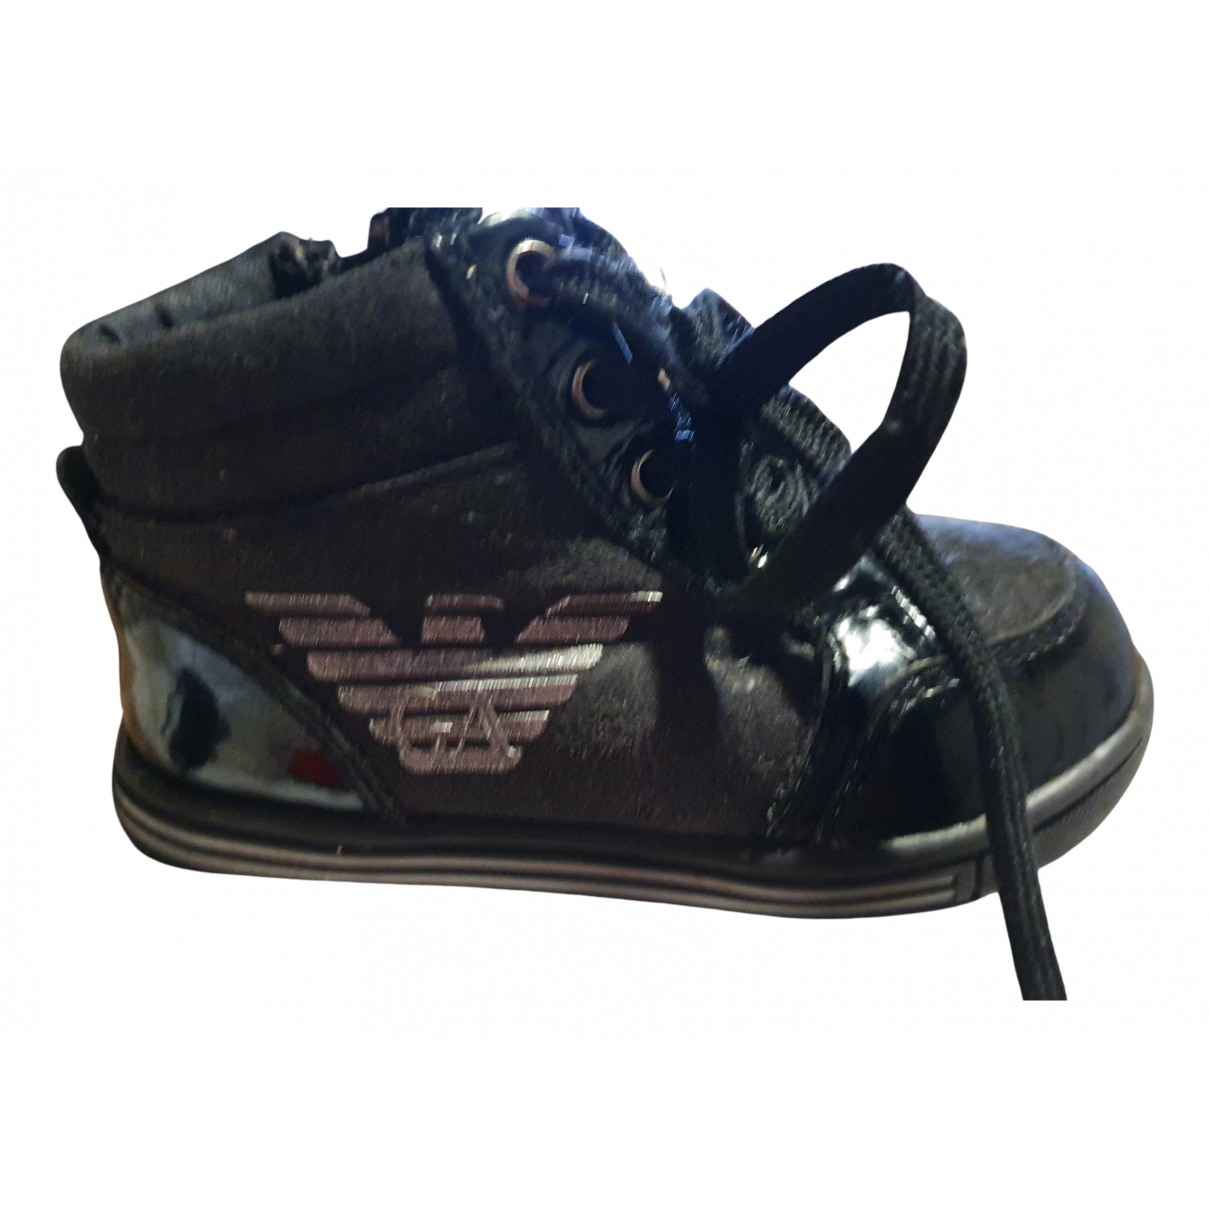 Burberry N Black Patent leather Trainers for Kids 21 FR